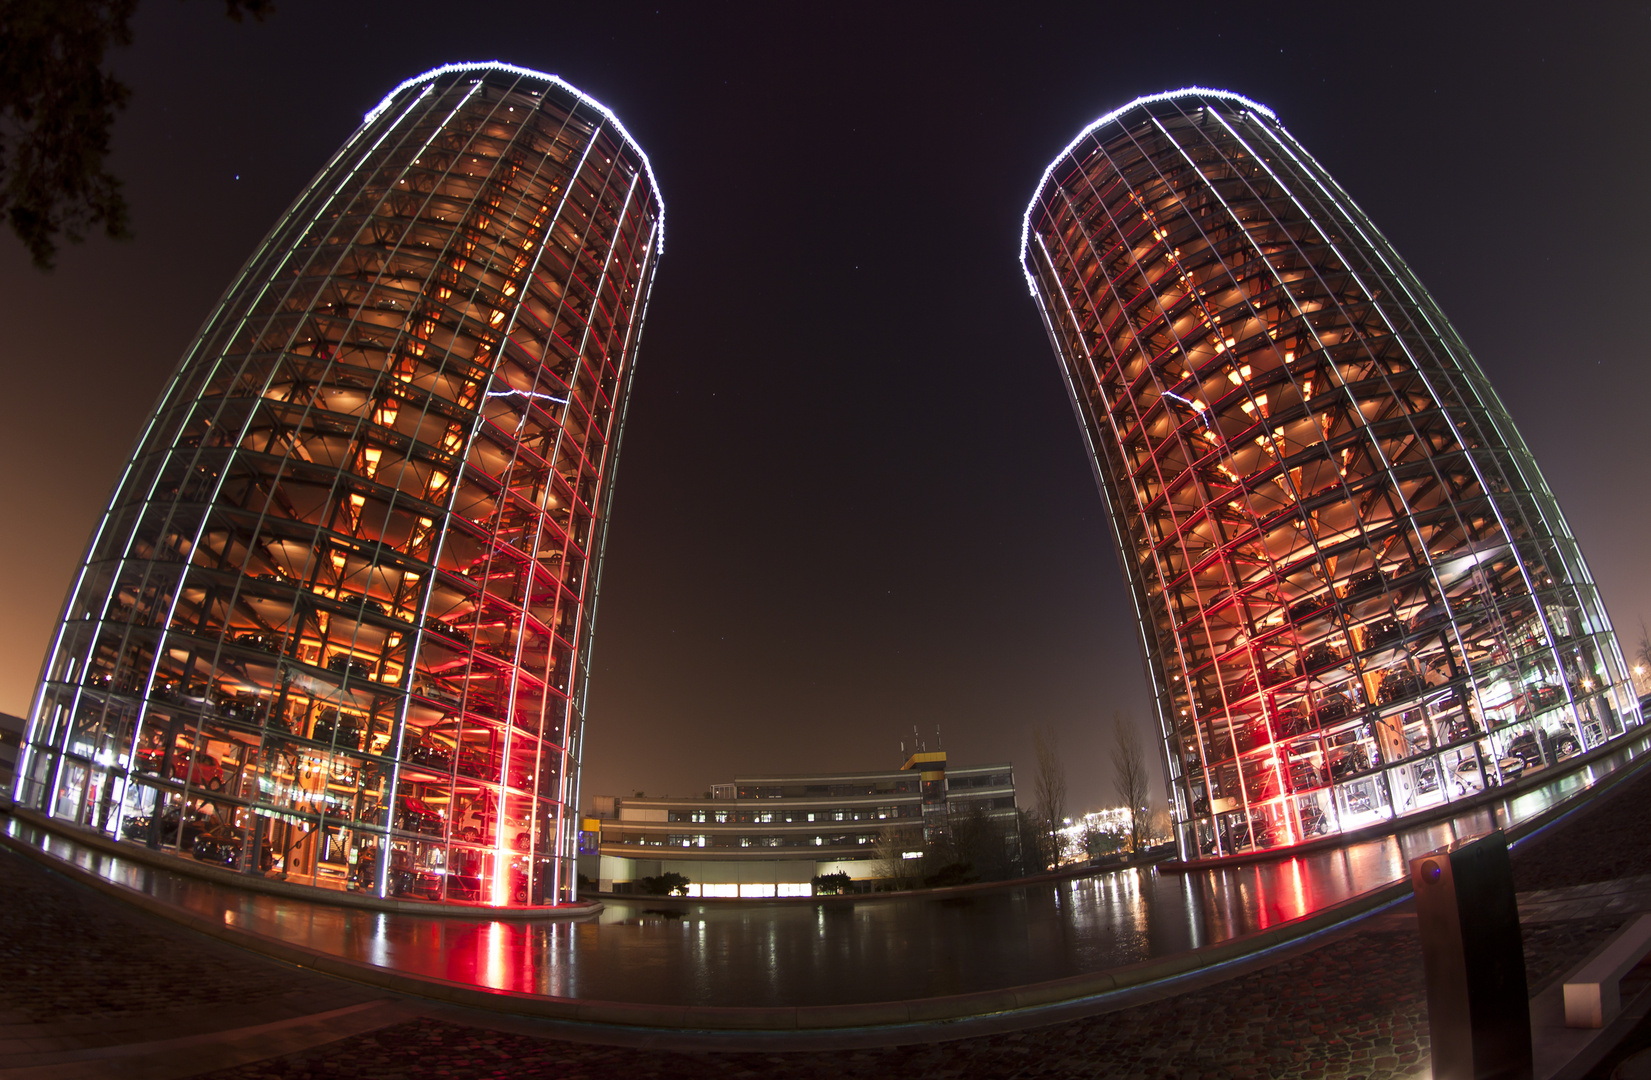 the two towers @ Autostadt